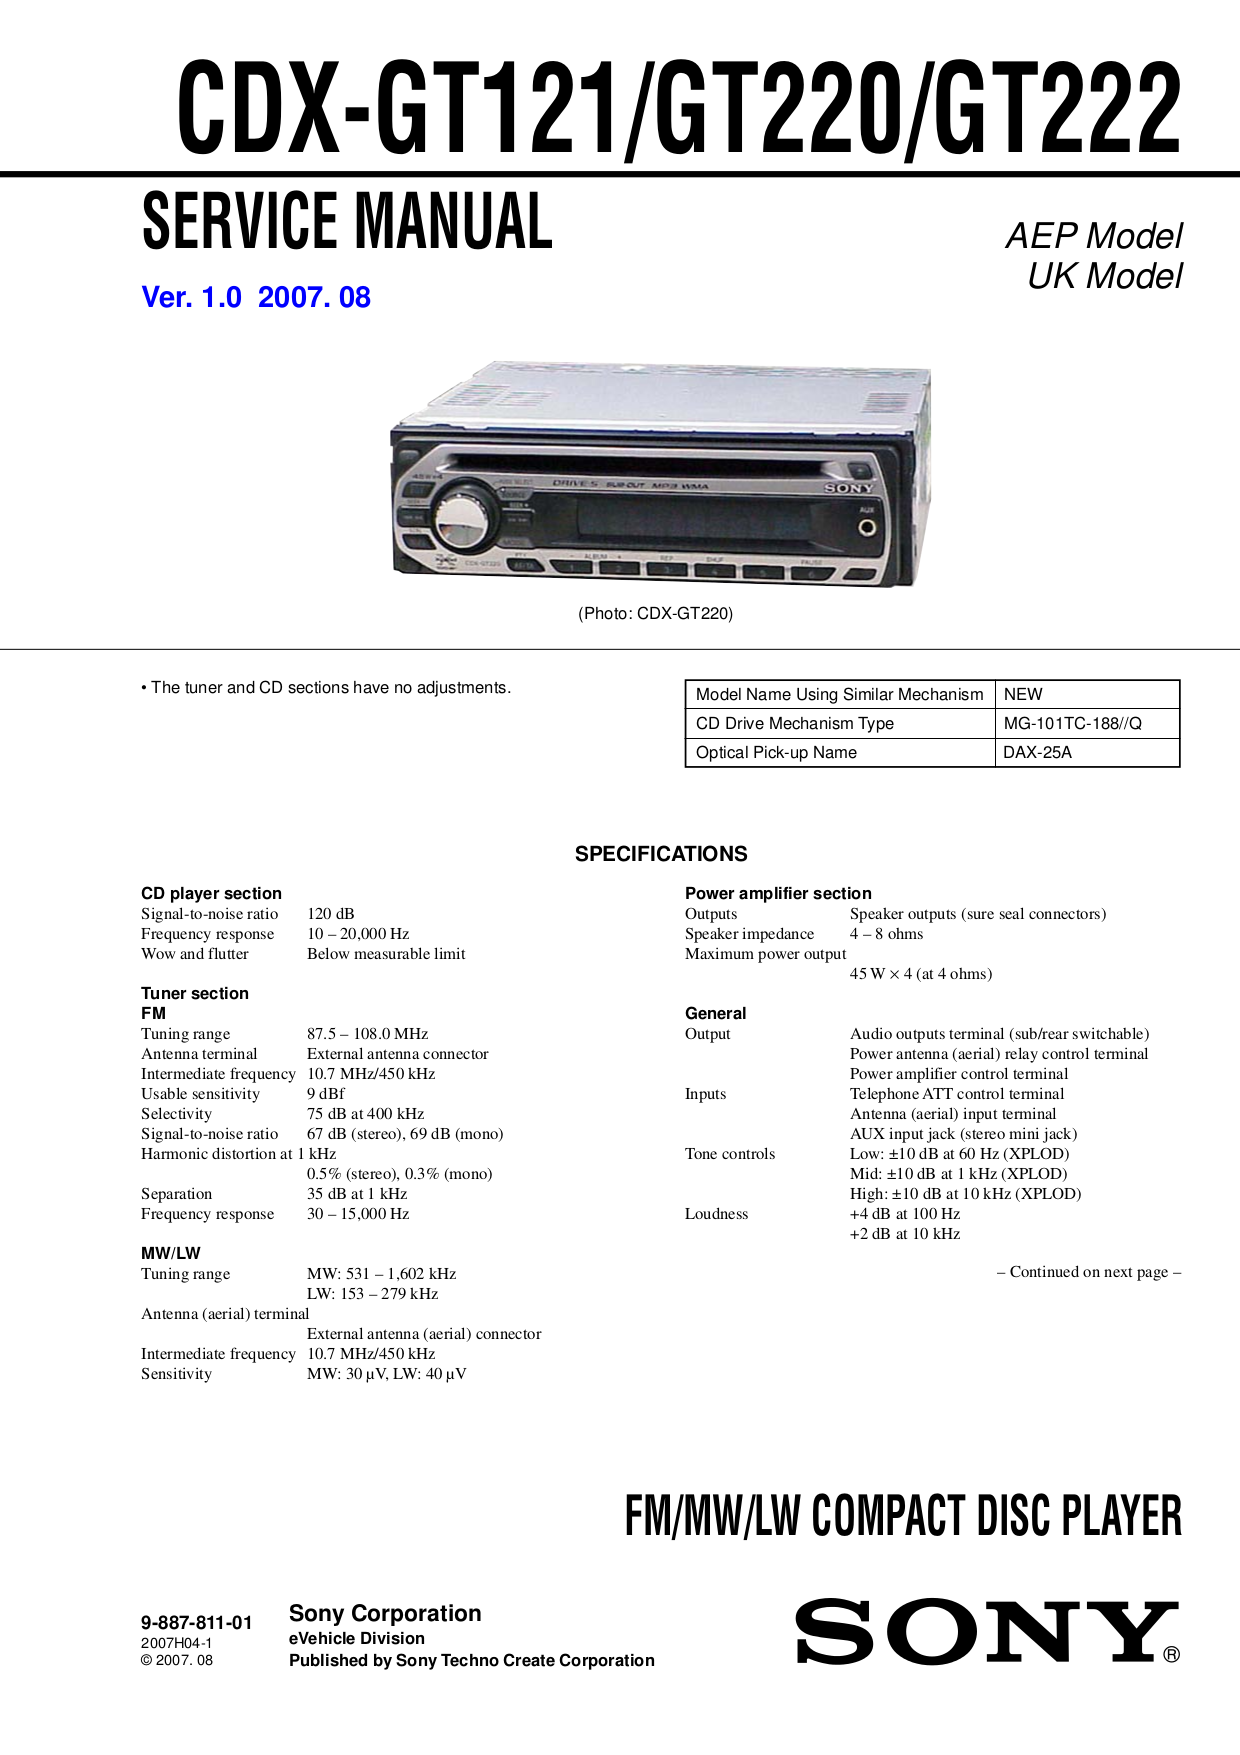 SONY CDX GT121 GT220 GT222.pdf 0 download free pdf for sony cdx gt220 car receiver manual sony xplod cdx sw200 wiring diagram at alyssarenee.co